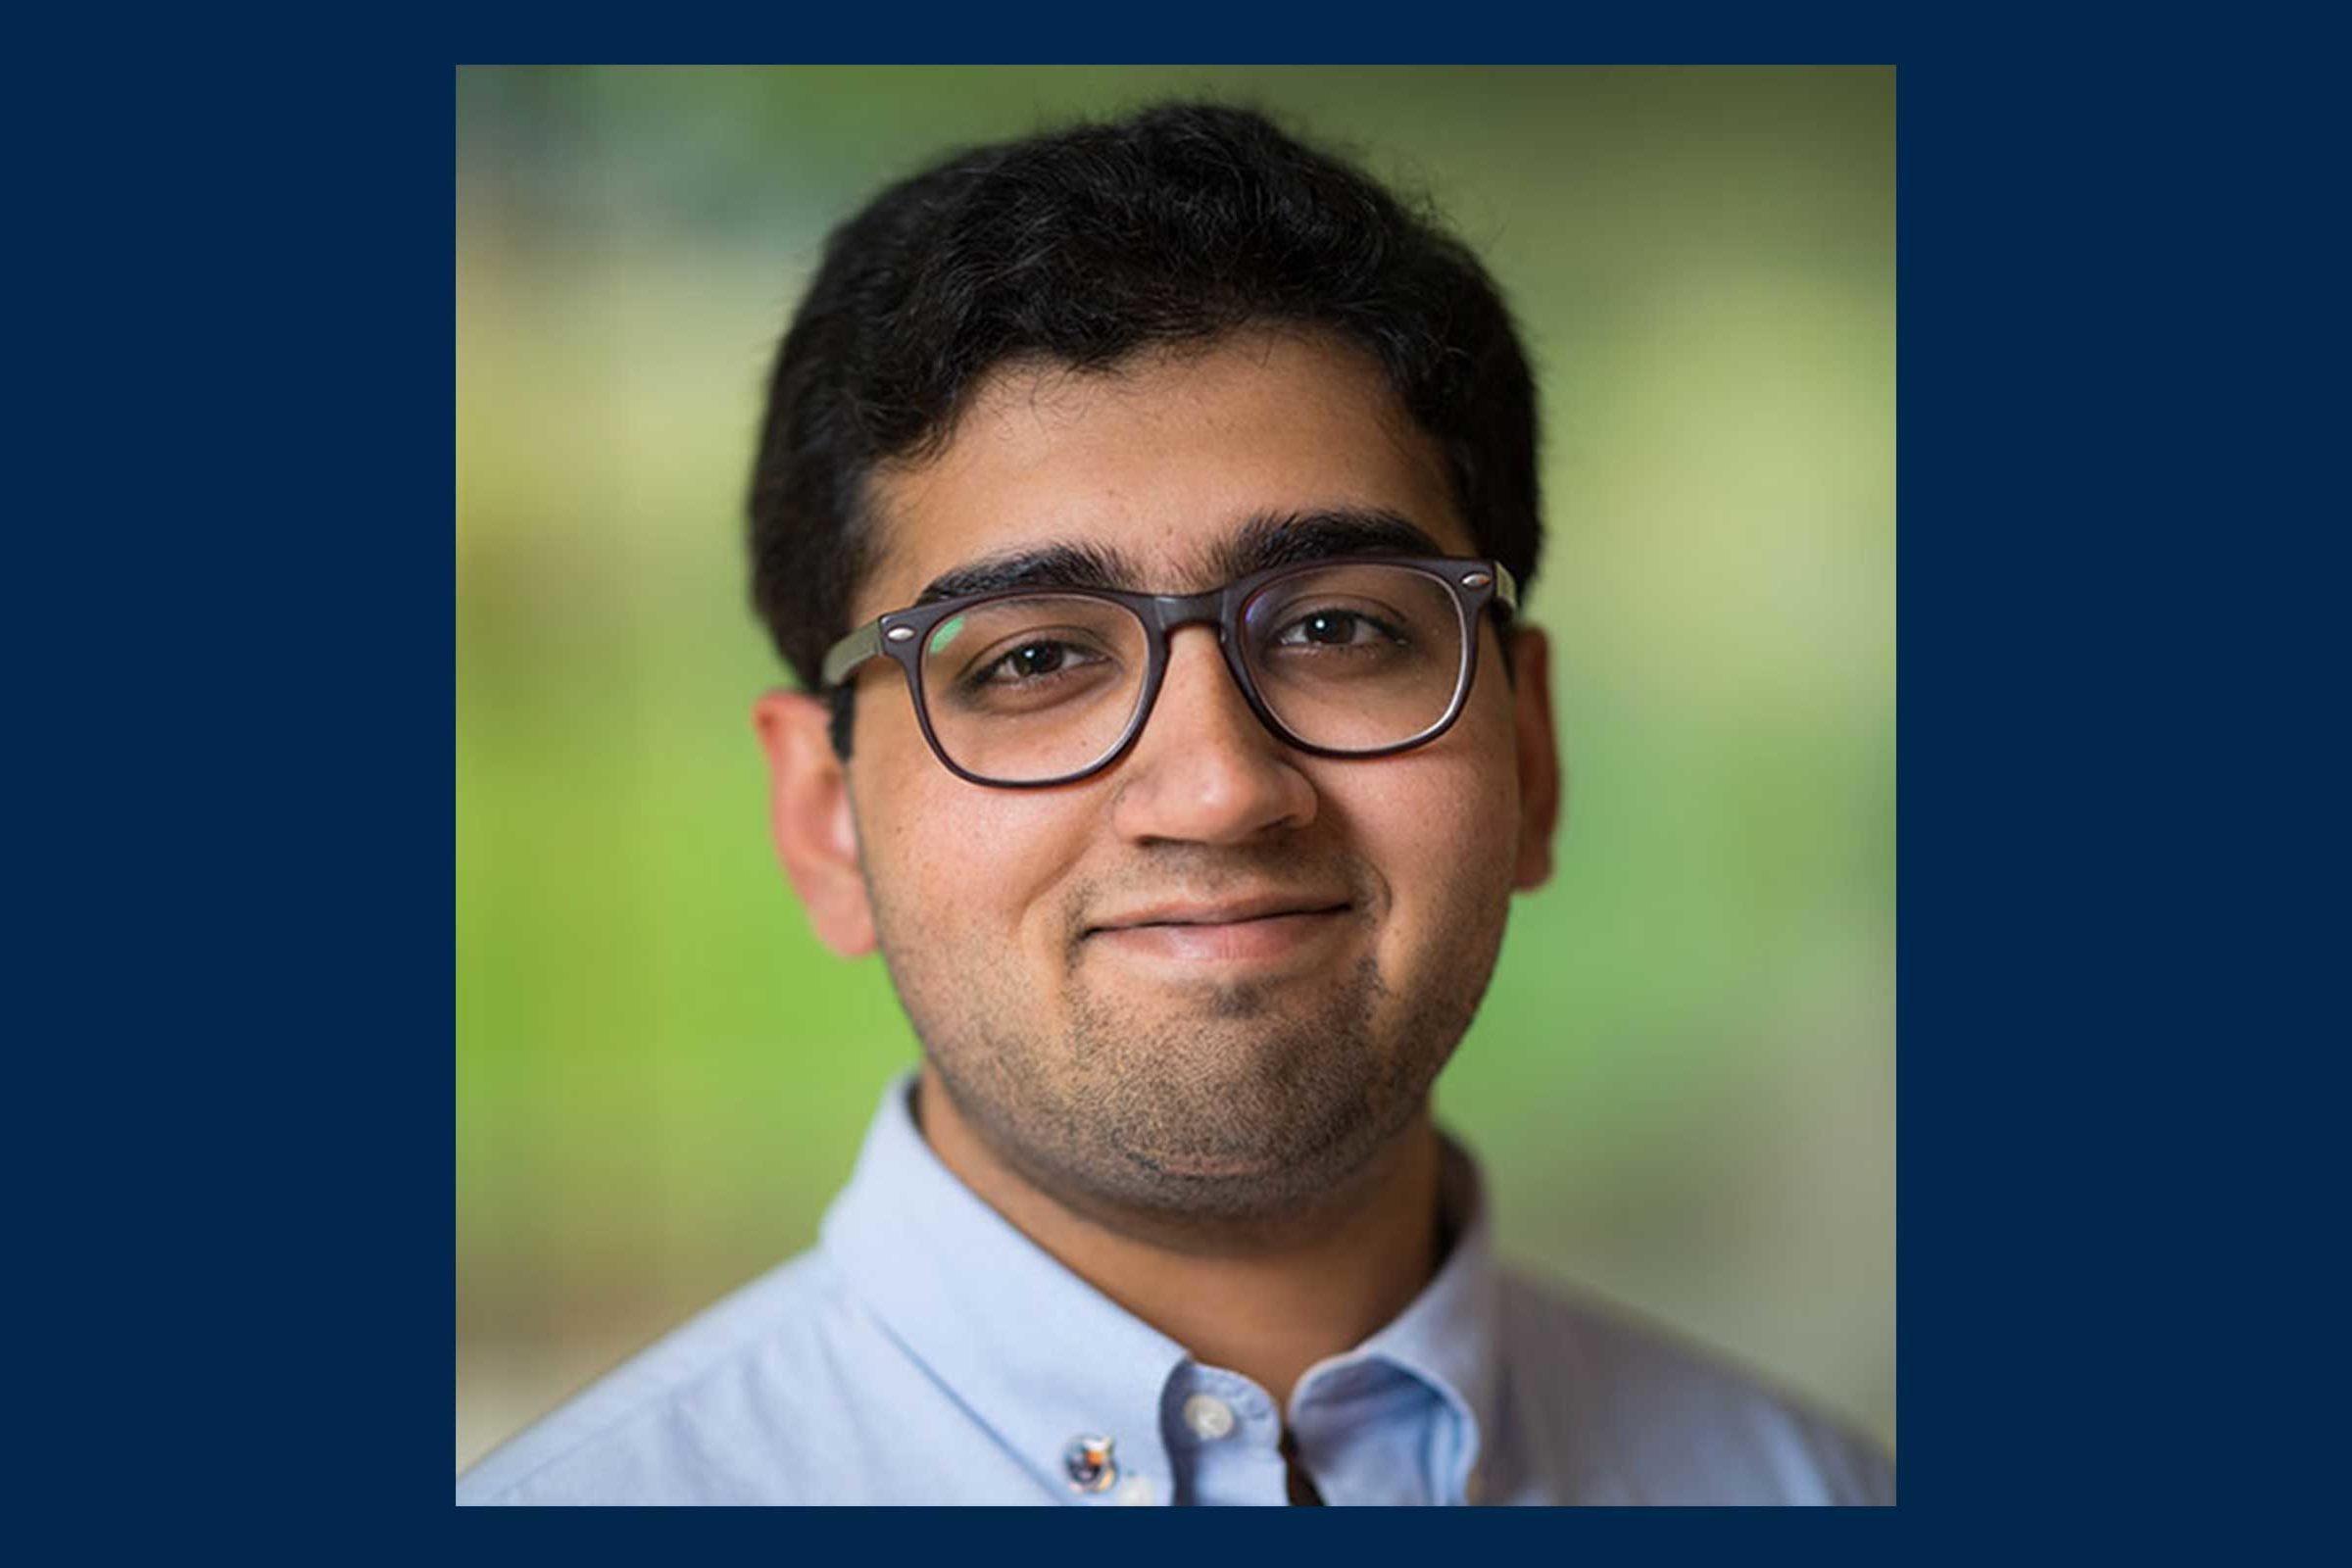 Climate and Space PhD student Agnit Mukhopadhyay